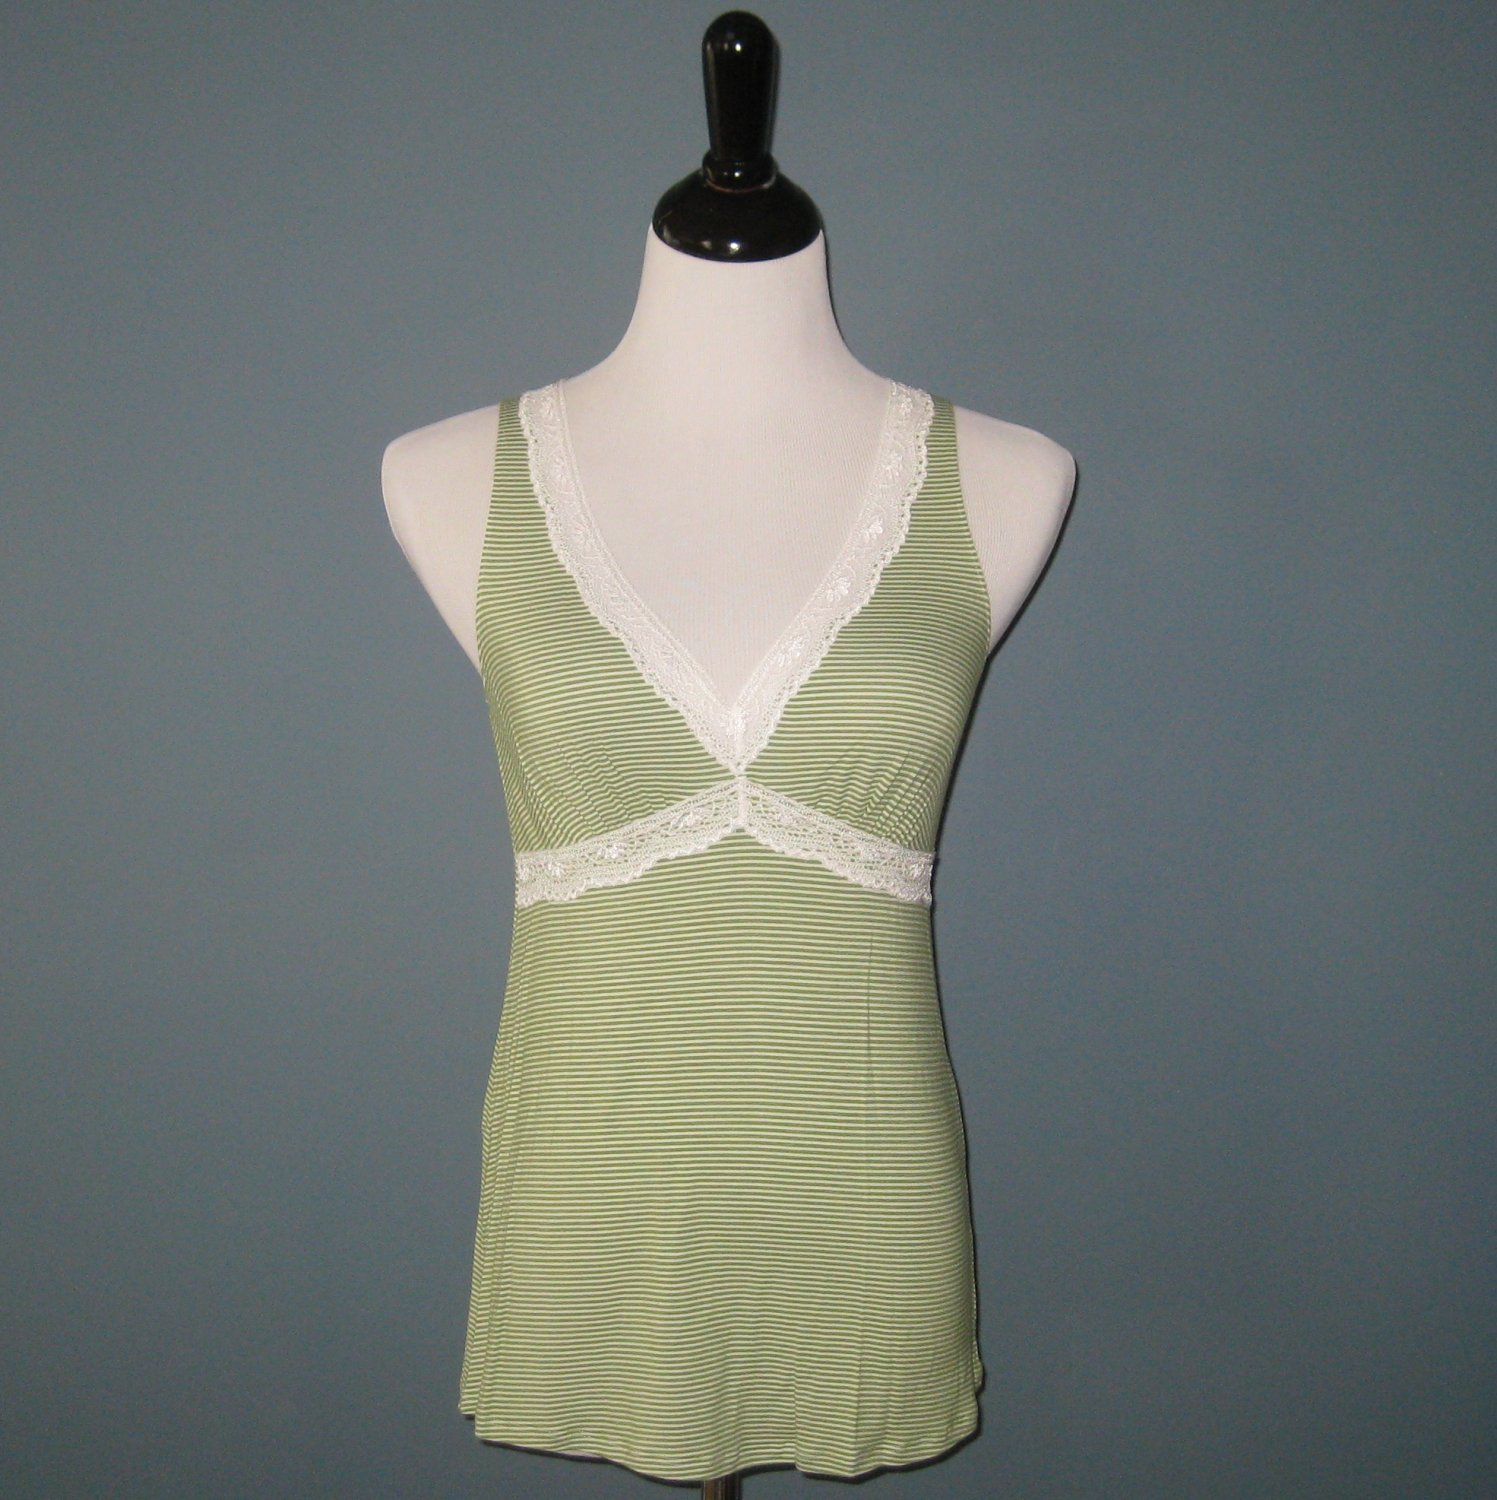 NWT Elle Macpherson Green Procession Bamboo Blend Sleep Tank Cami Camisole - S